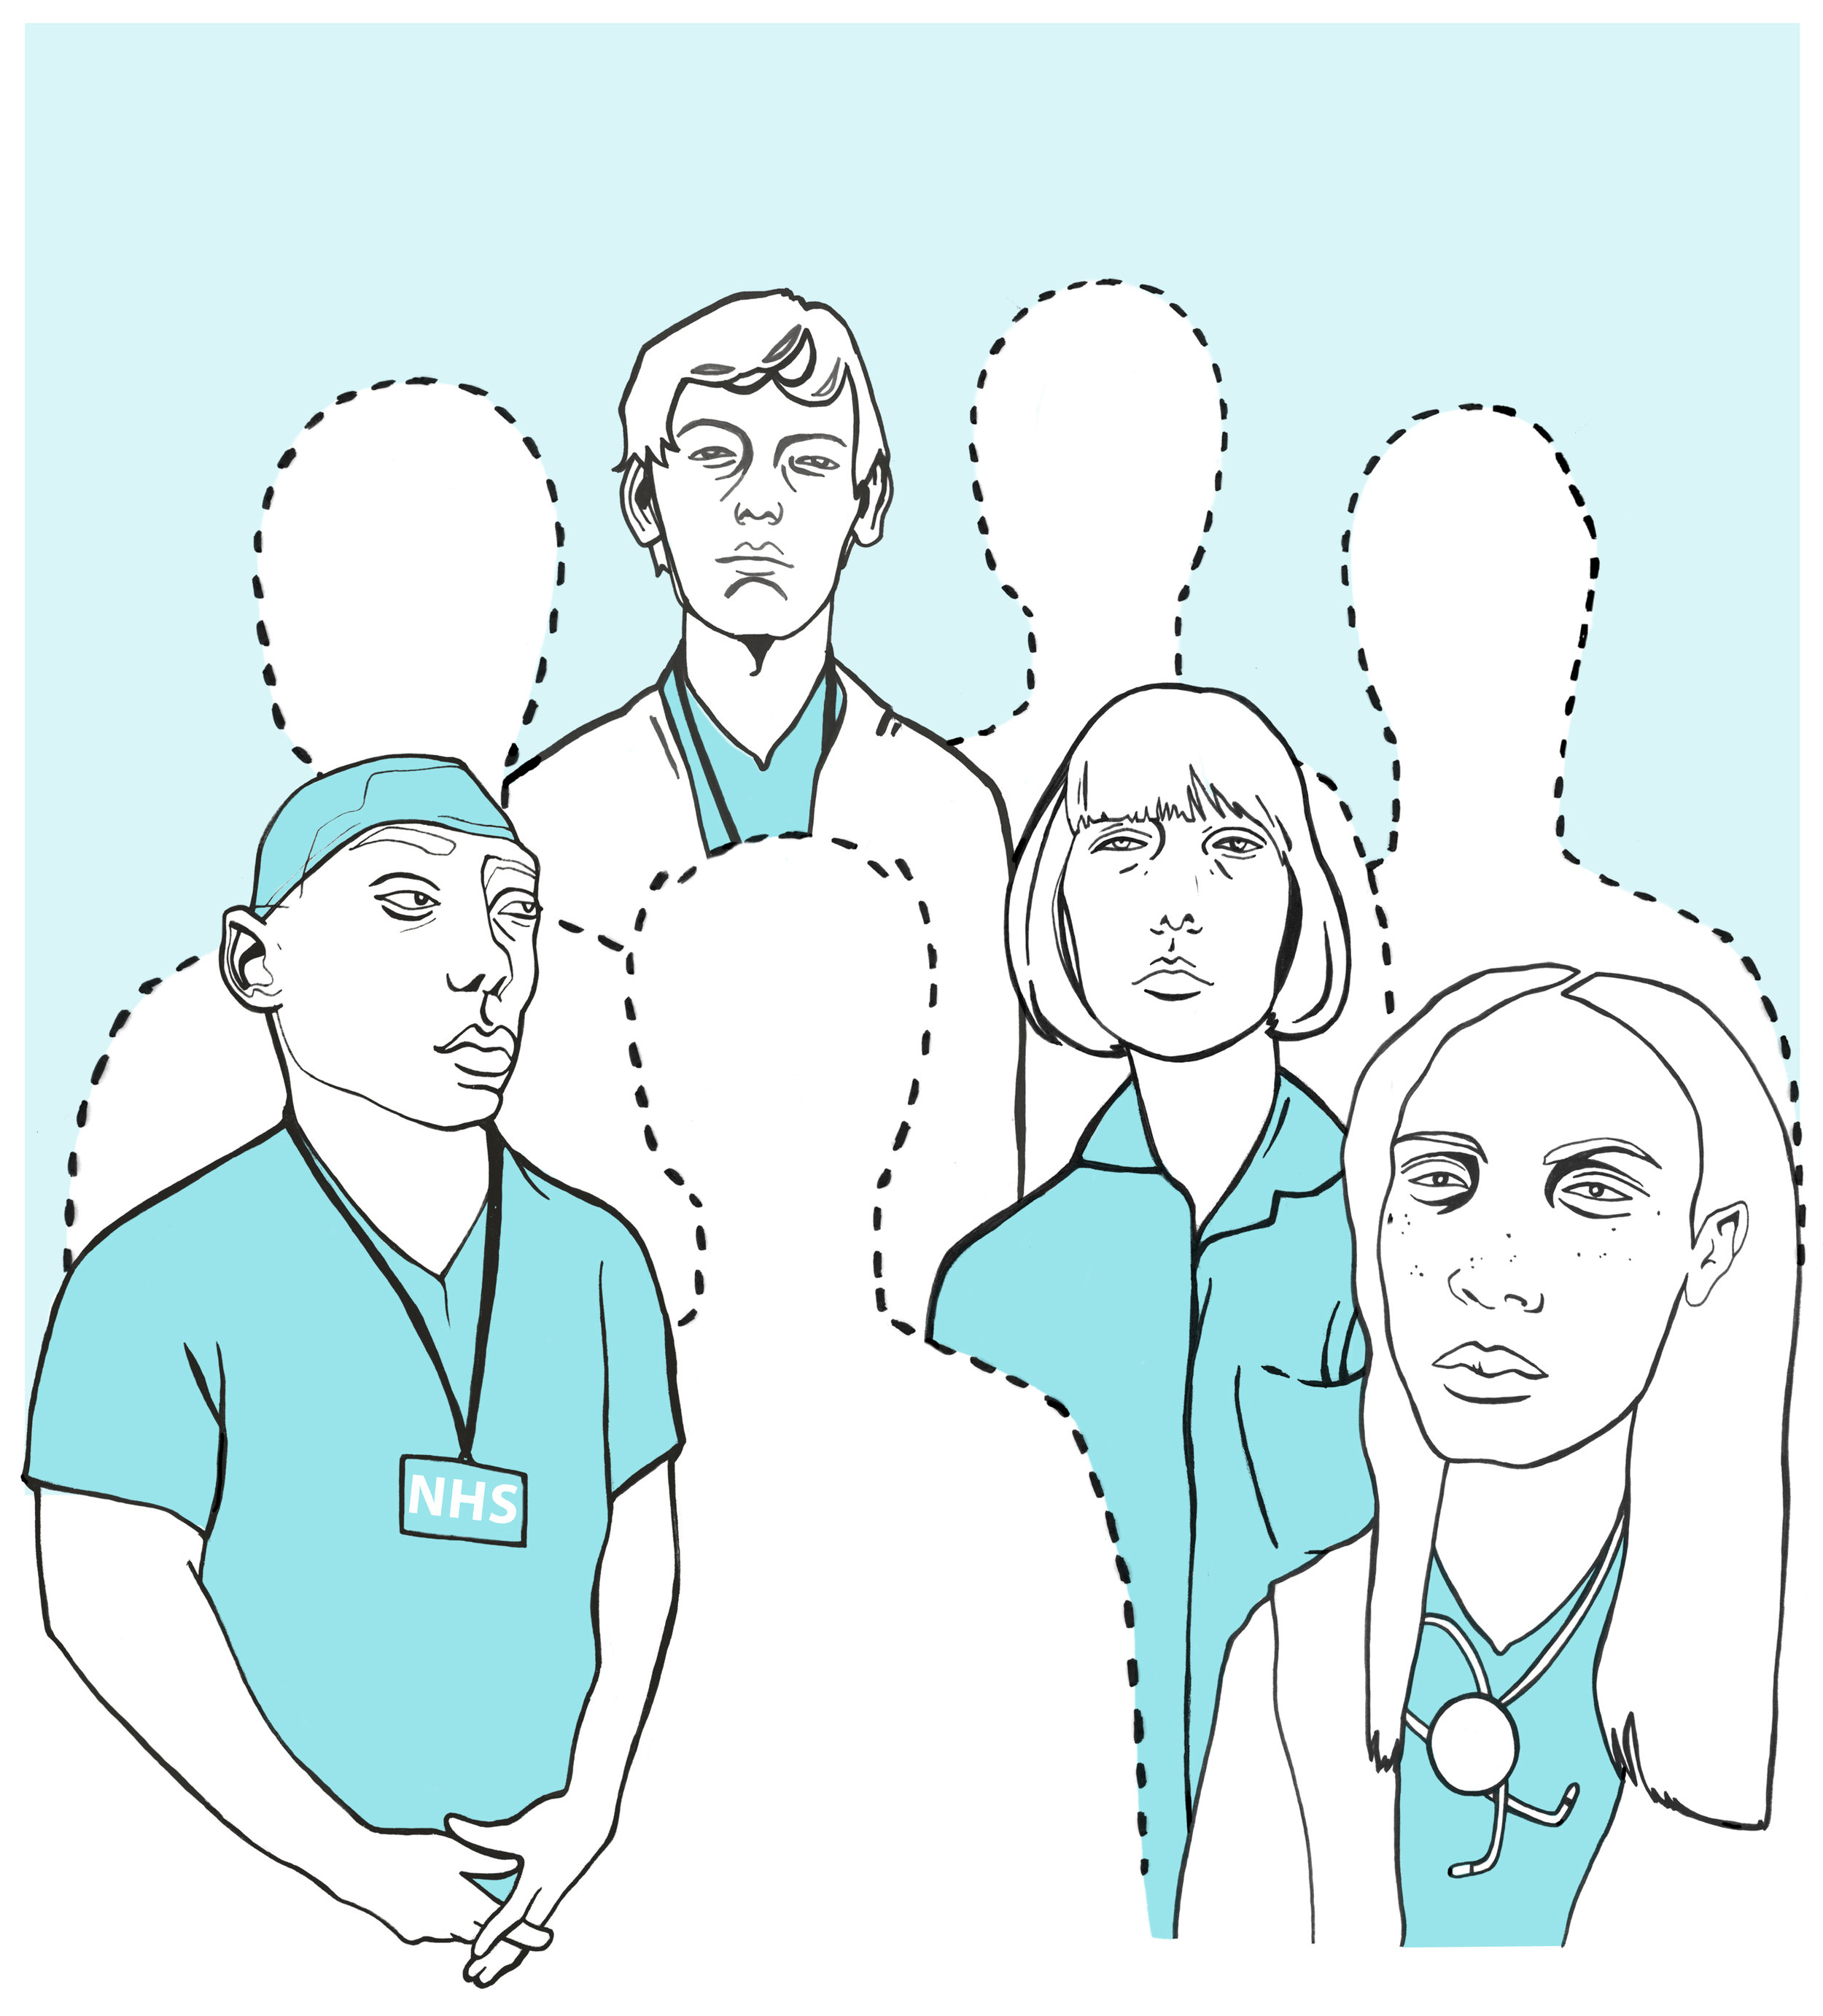 Cover illustration for The Bristol Cable about NHS staff mental health and illness